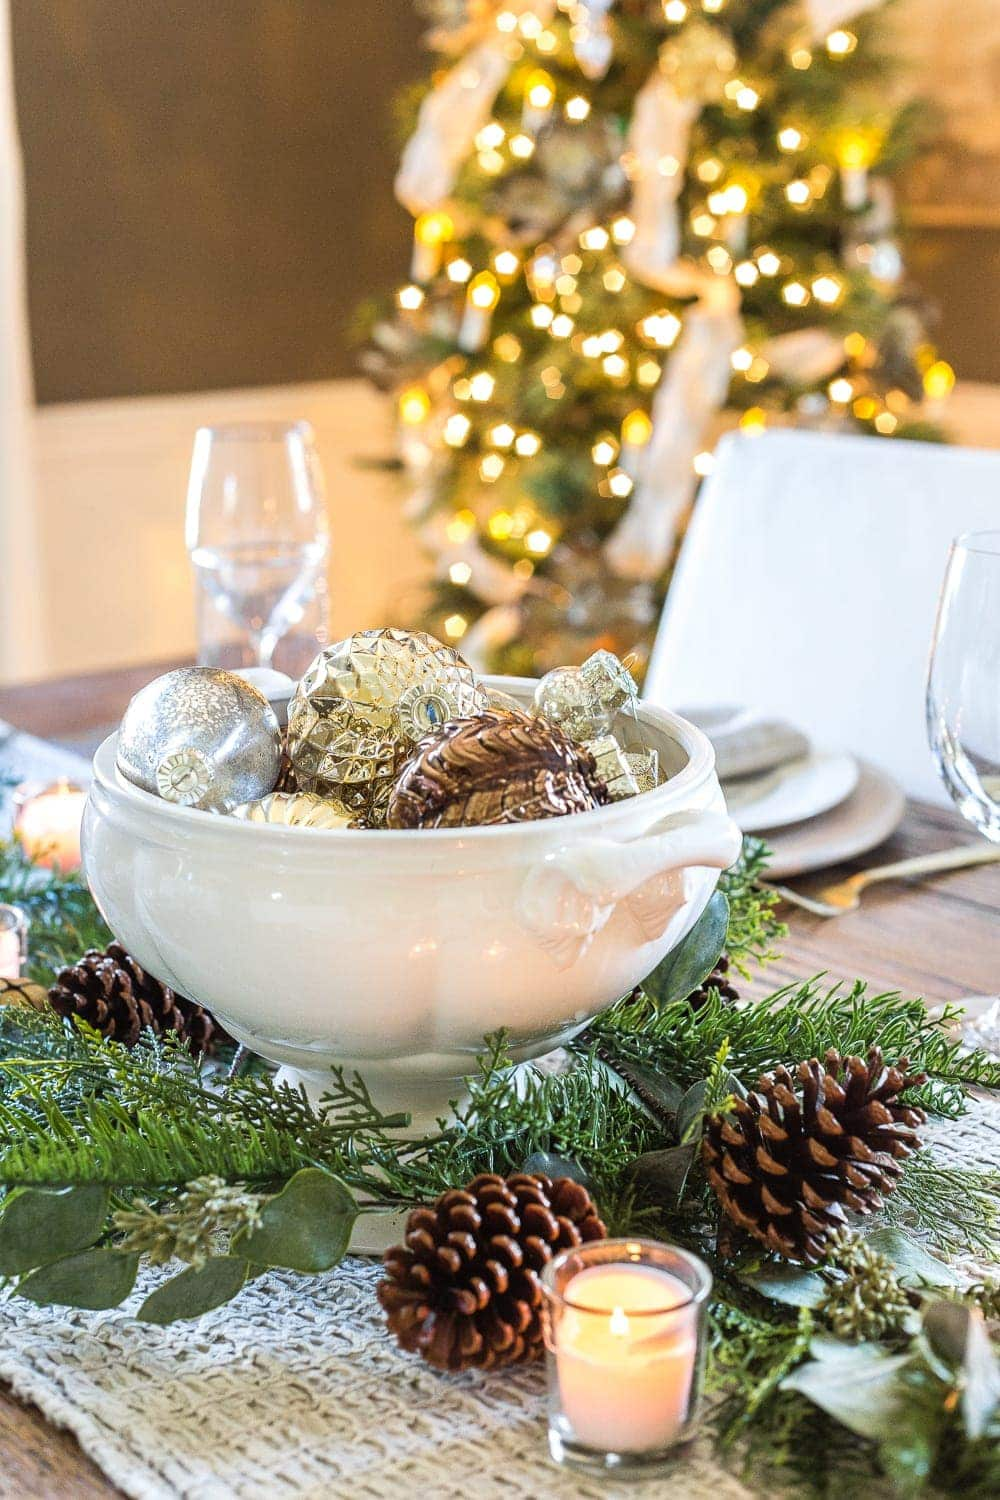 Thrifty Christmas decorating idea: Fill a soup tureen with ornaments for a centerpiece